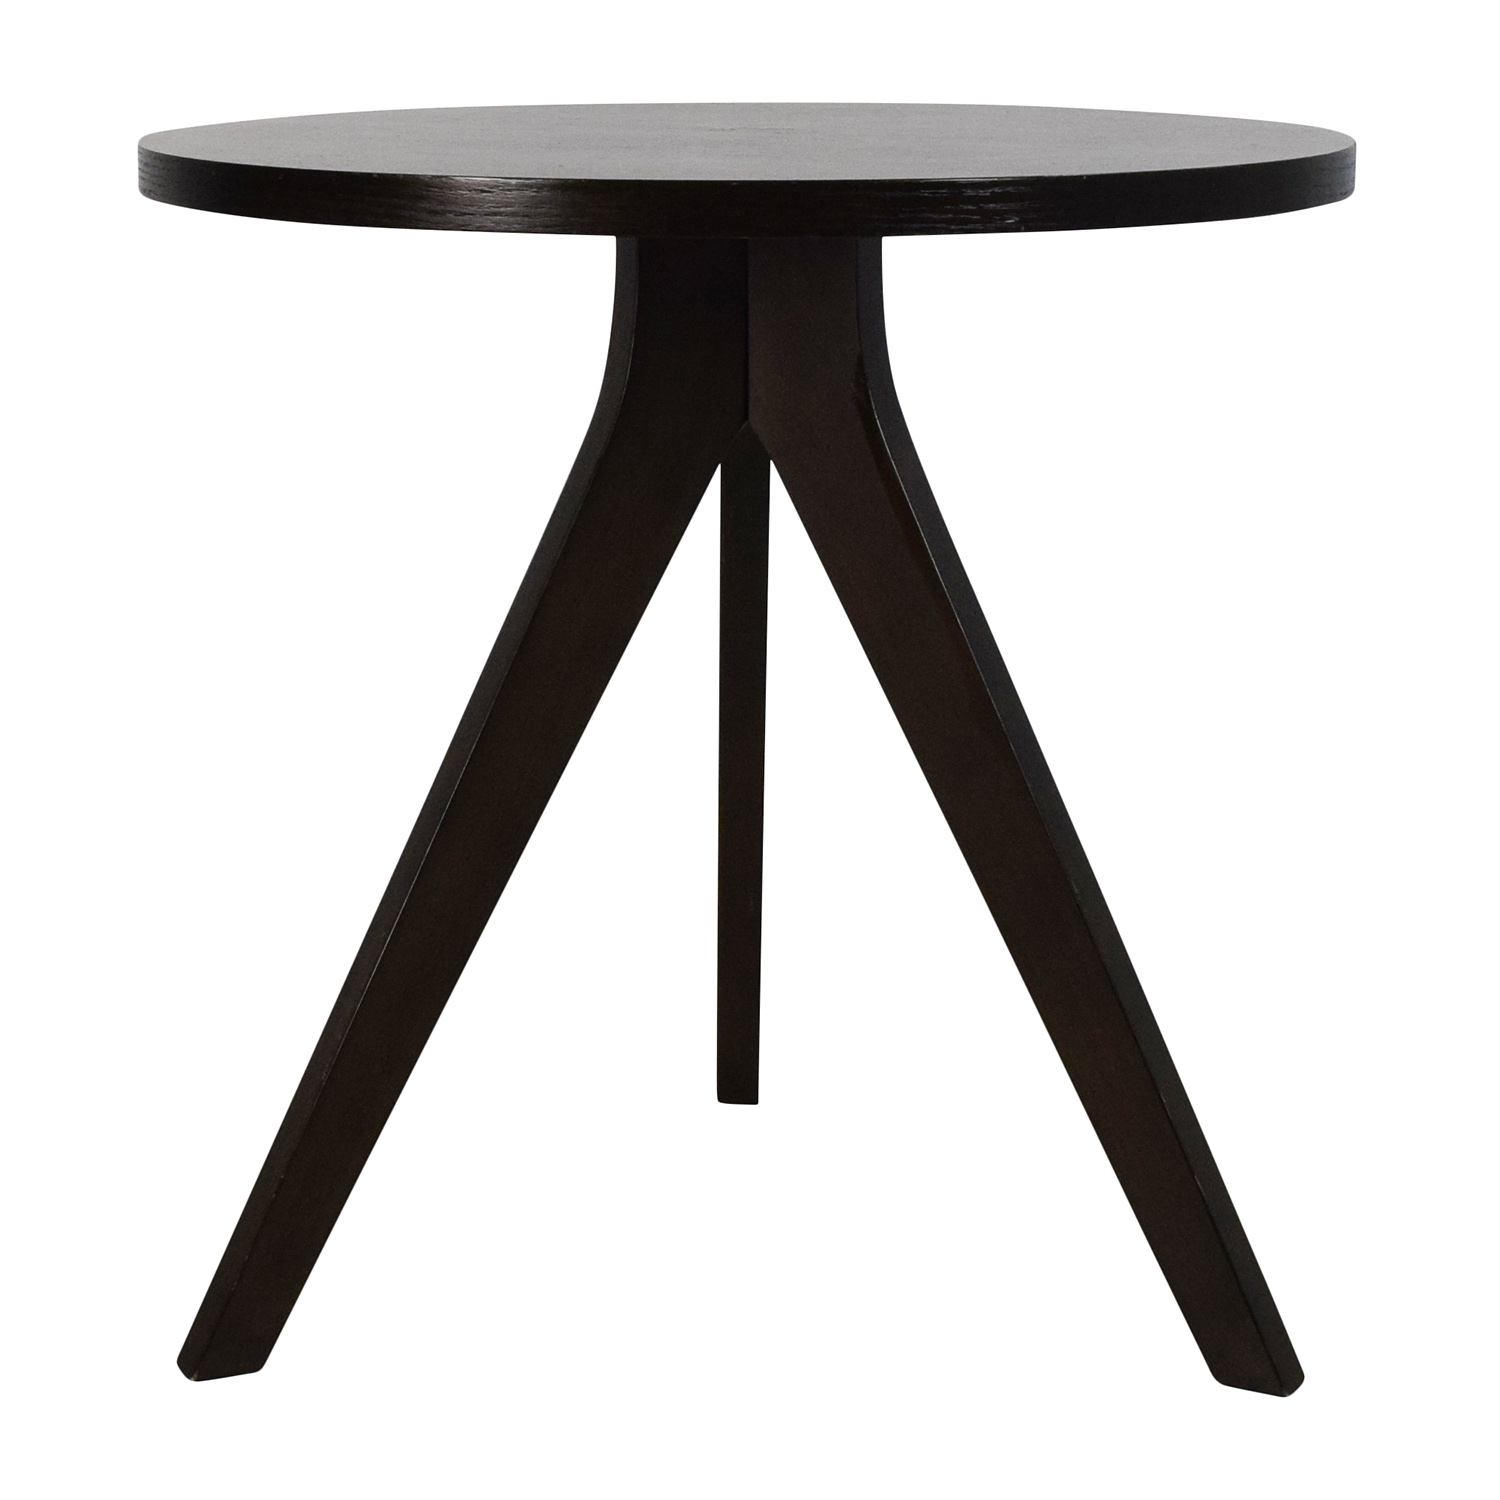 off pottery barn rustic pedestal accent table west elm tripod side second hand dark brown bar feet coffee sets glass nesting tables outdoor mosaic tile small garden furniture